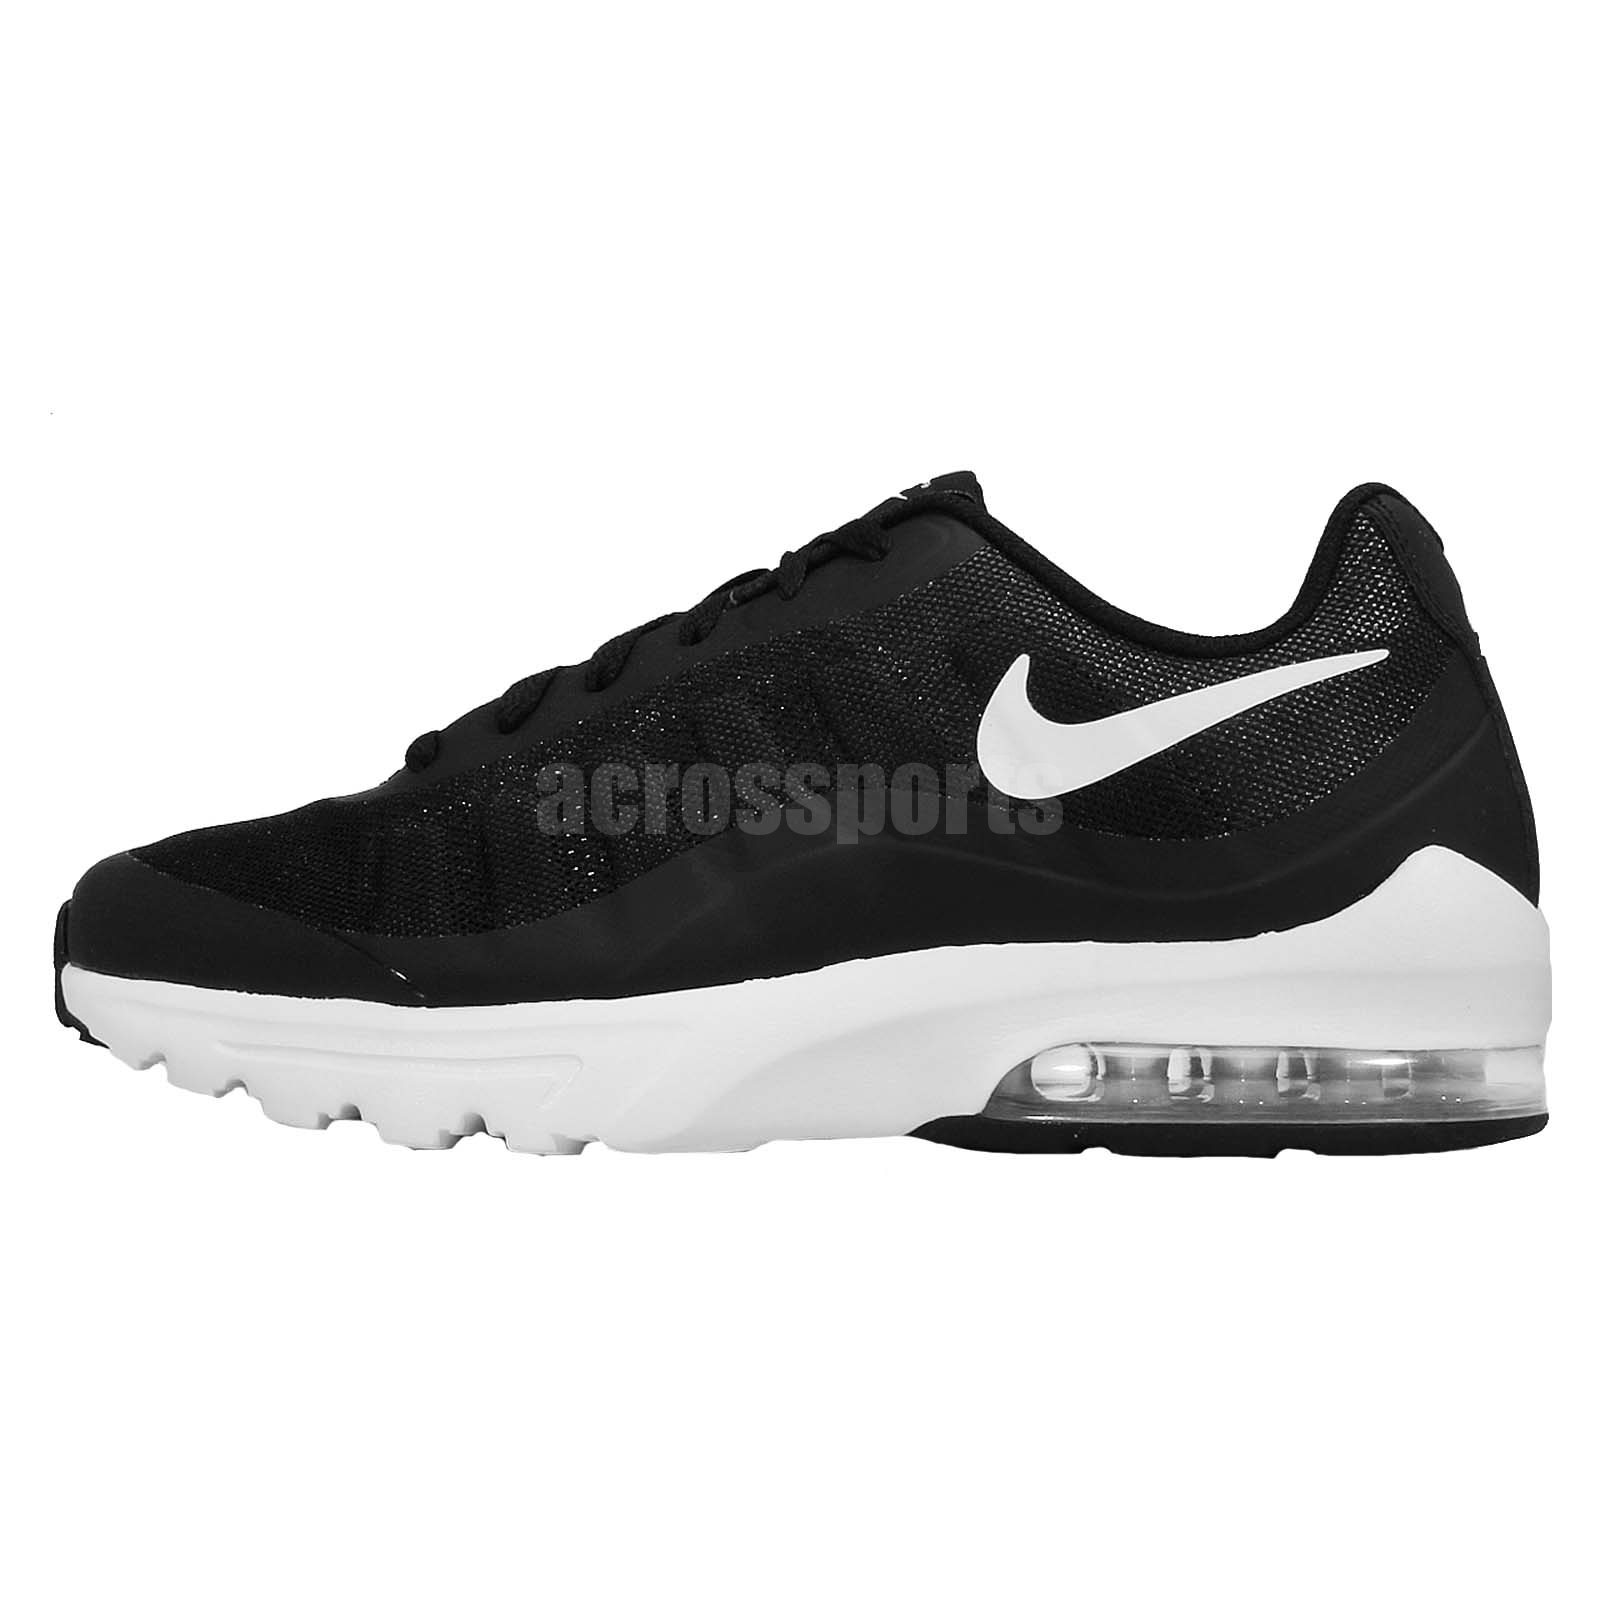 d617e746550500 Cyber Monday Sales On Nike Shoes Cyber Monday Shoes For Him